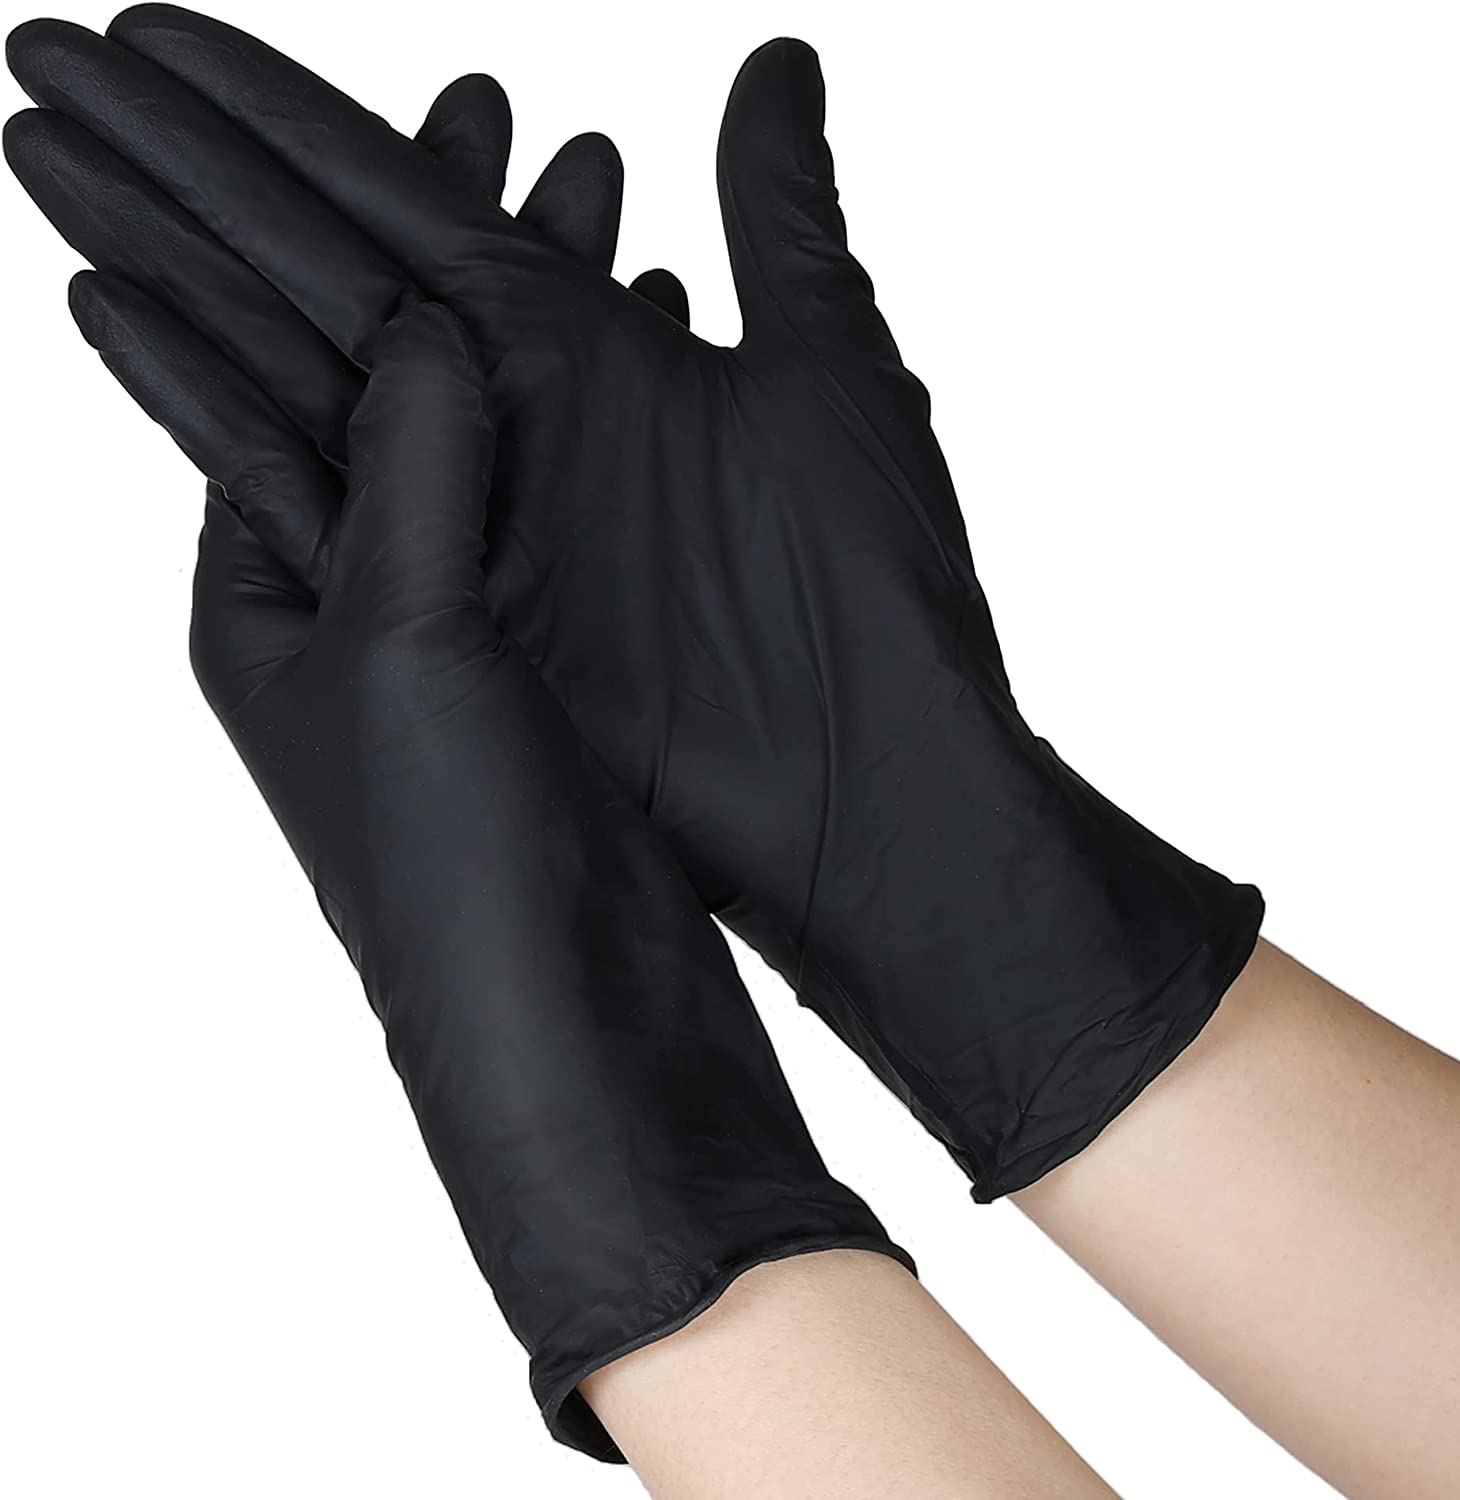 100 Pcs Disposable Gloves - Nitrile and Vinyl Blend, Latex and Powder Free, Black Gloves